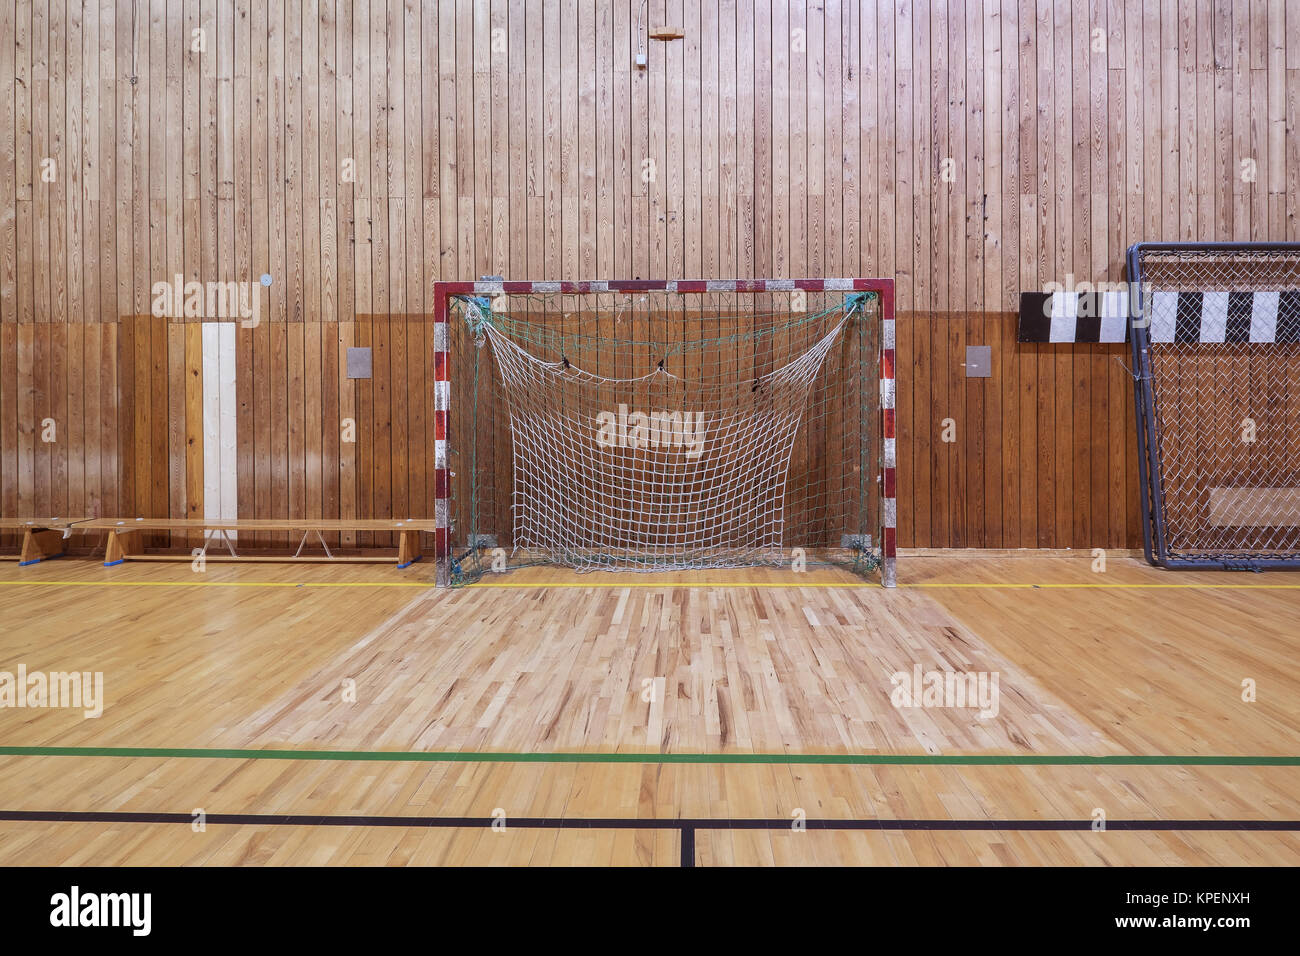 Retro Indoor Soccer Goal